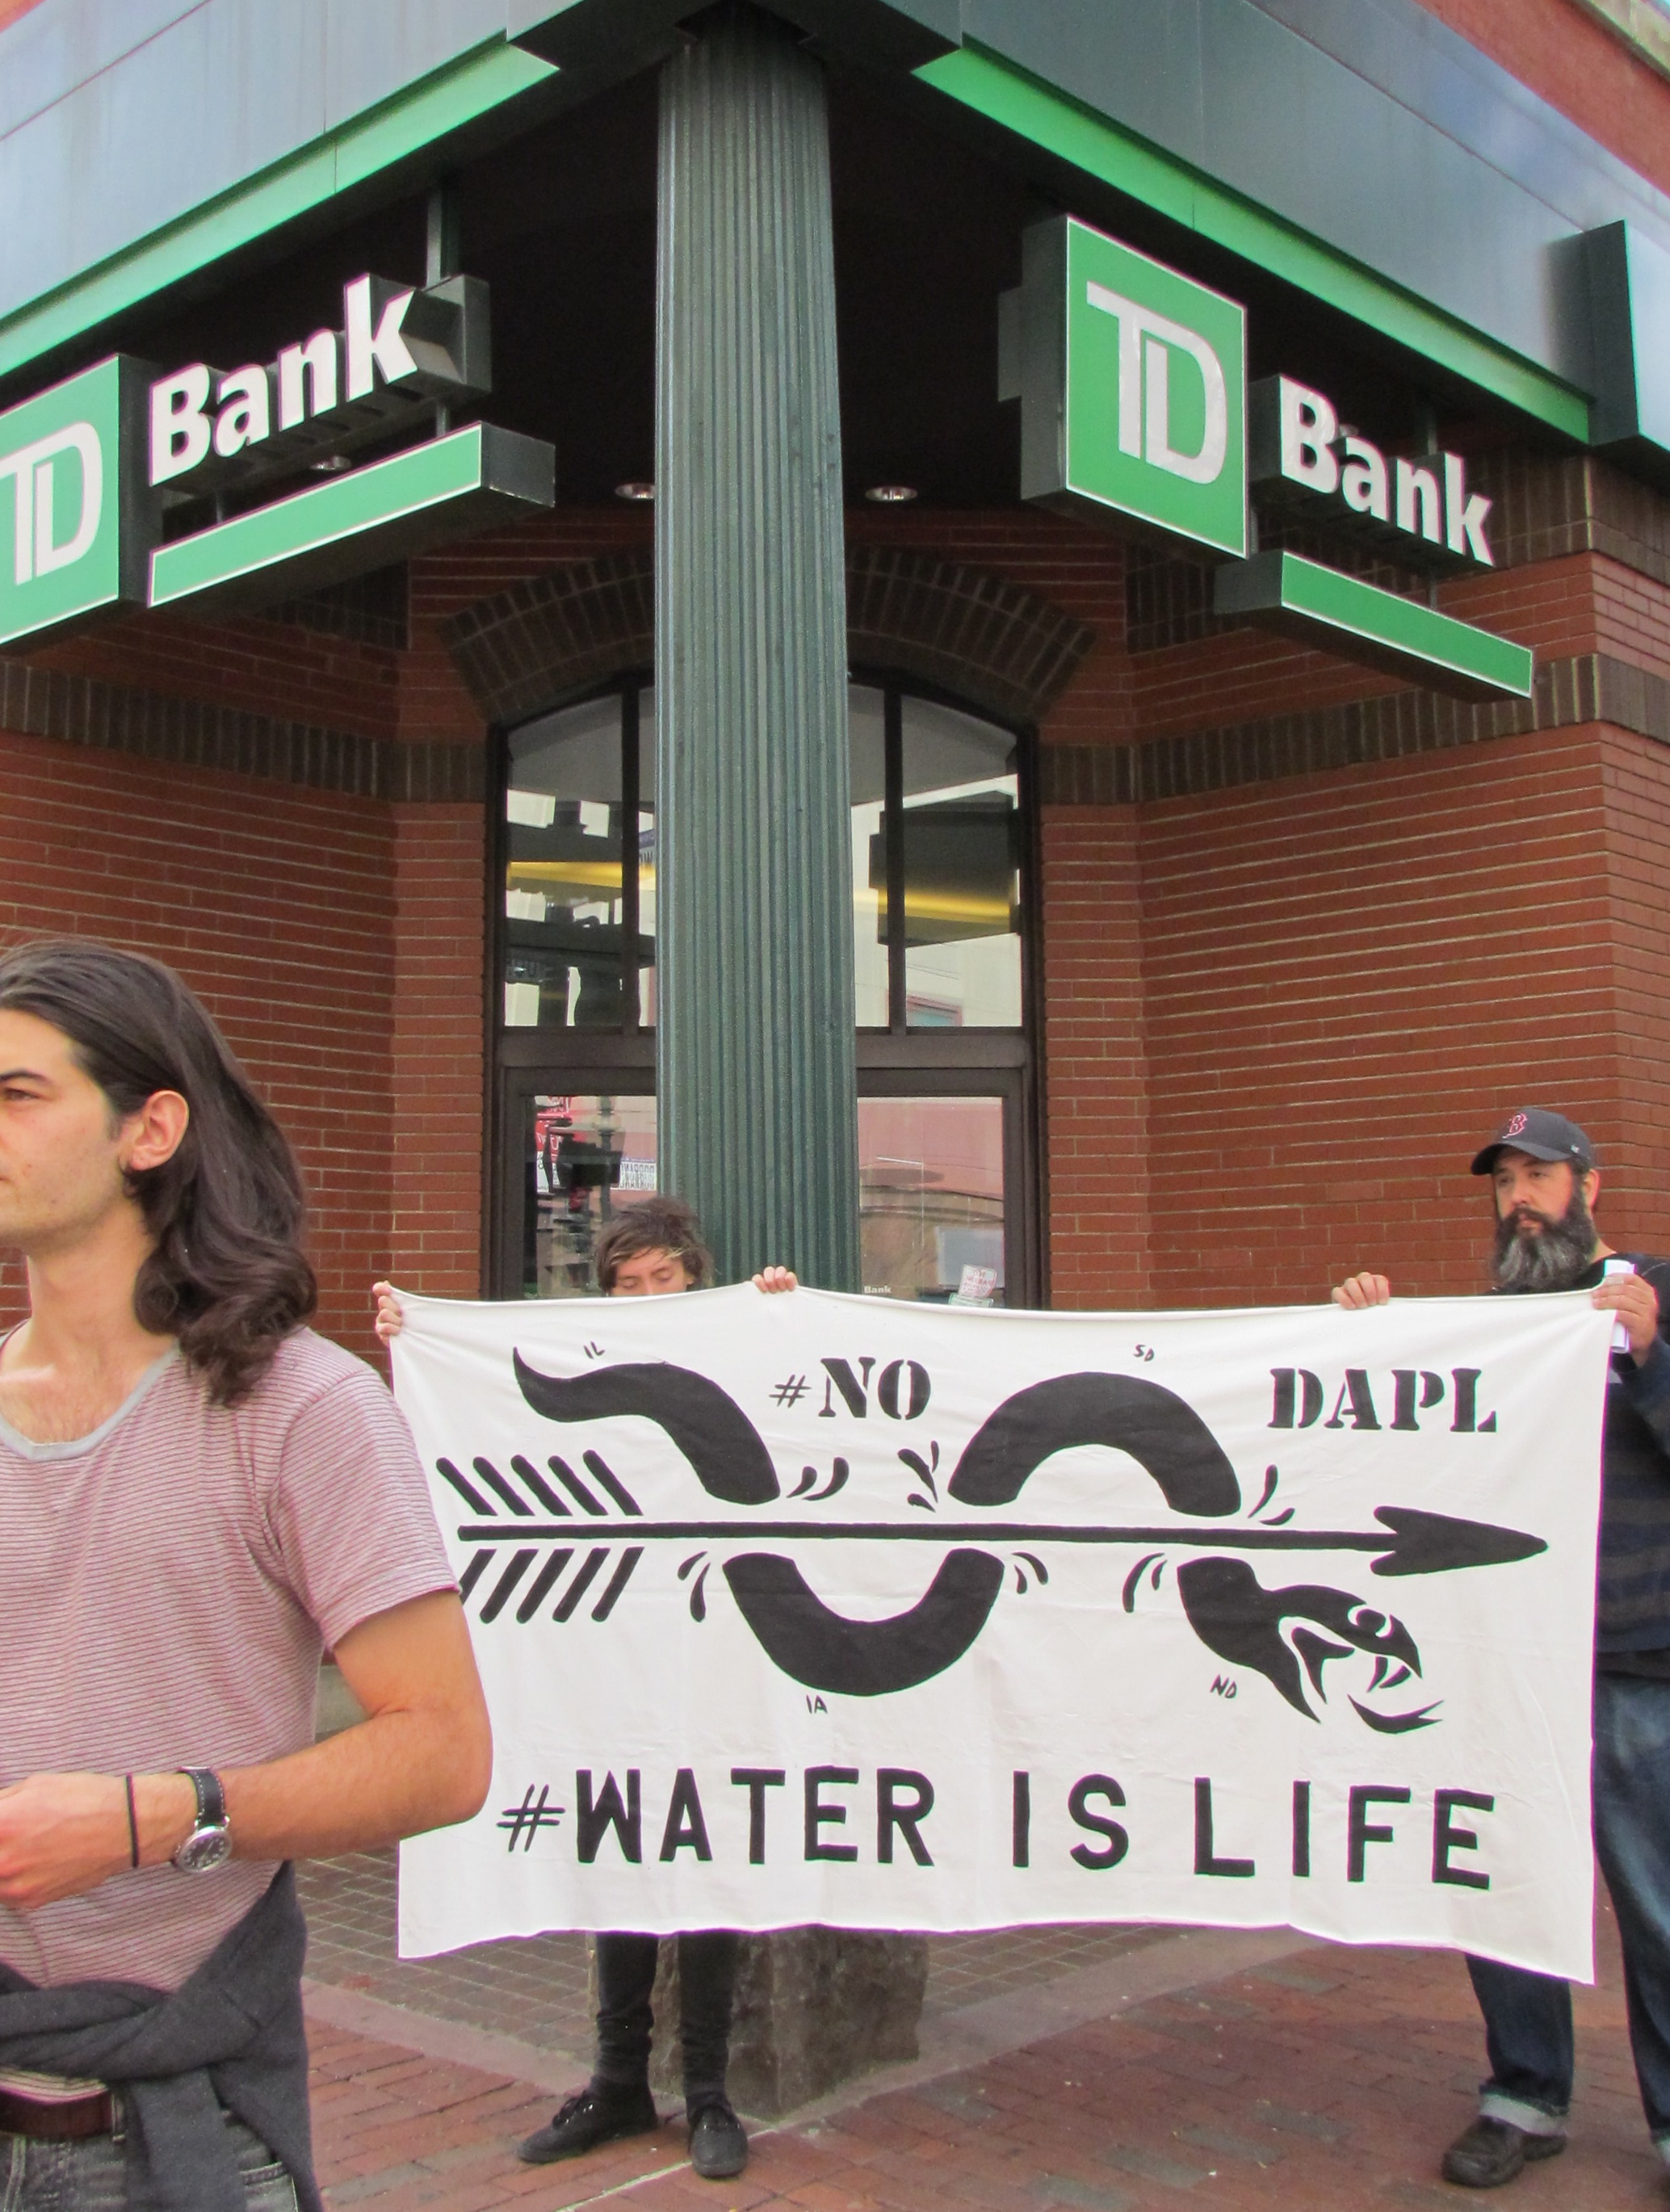 Two activists were arrested Oct. 20 for protesting inside the TD Bank on Westminster Street in Providence. (Tim Faulkner/ecoRI News photos)